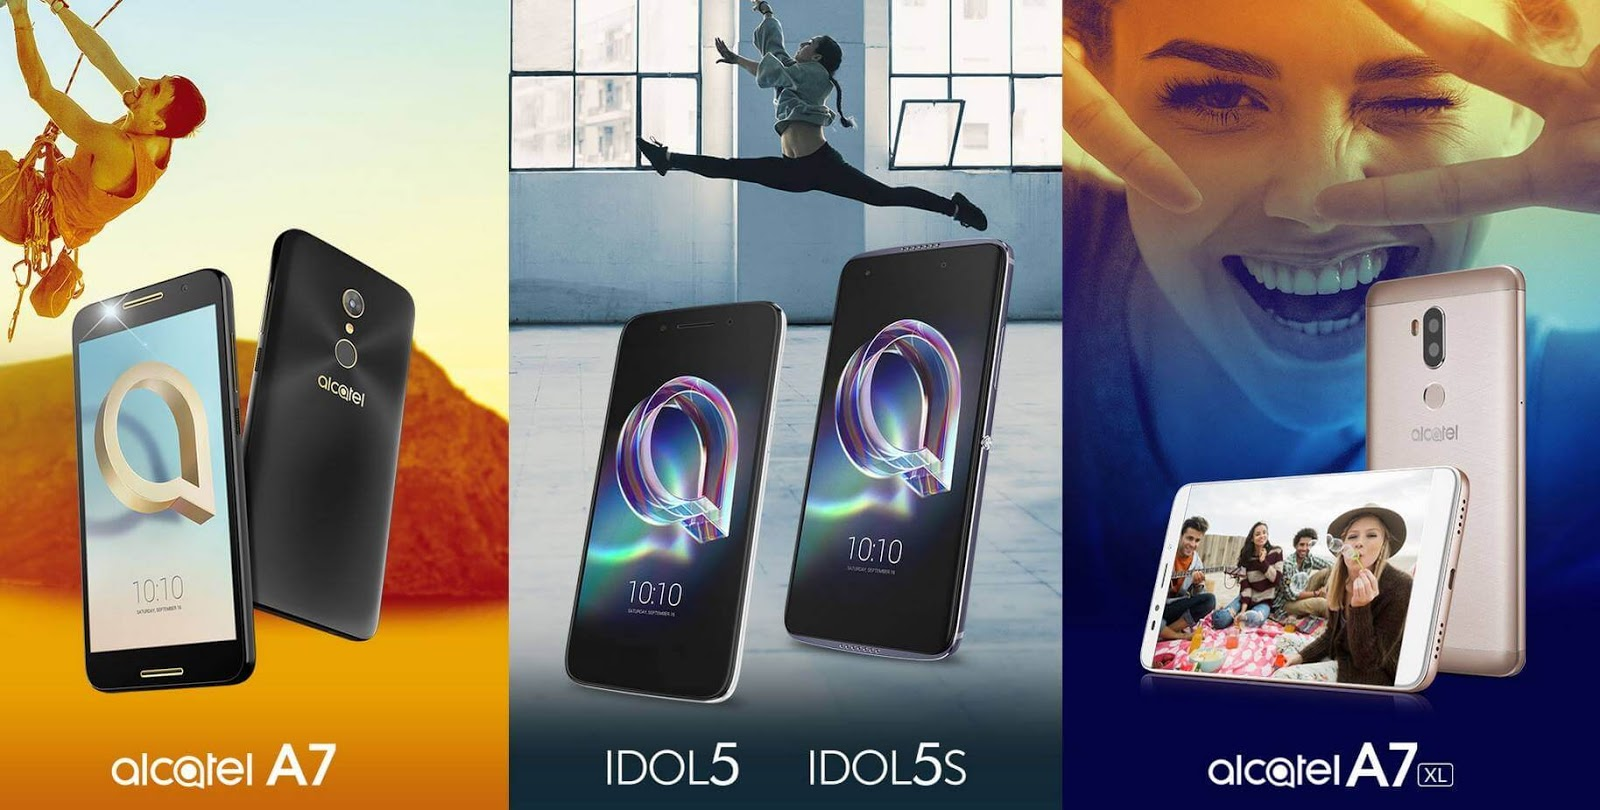 Alcatel Launches The Alcatel Idol 5, Idol 5S, A7, and A7 XL